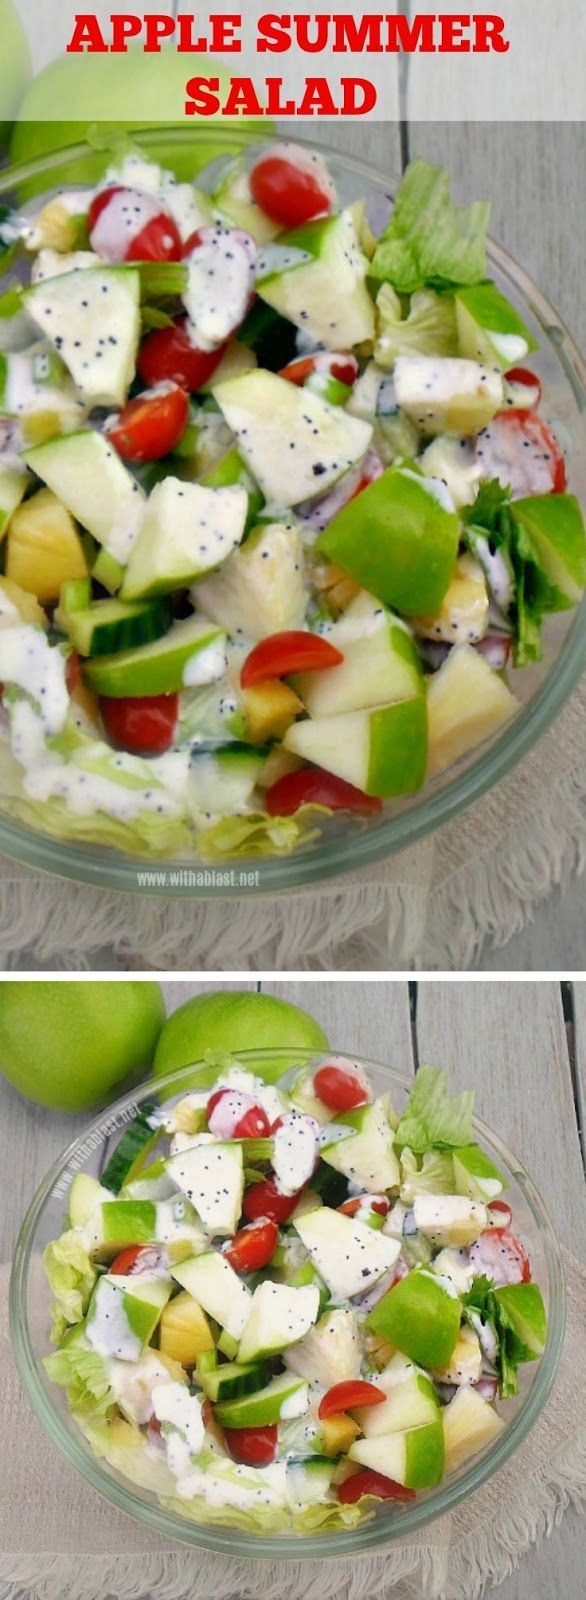 Delicious Summer salad with Apple, Pineapple and more ~ drizzled with a light Poppy Seed dressing